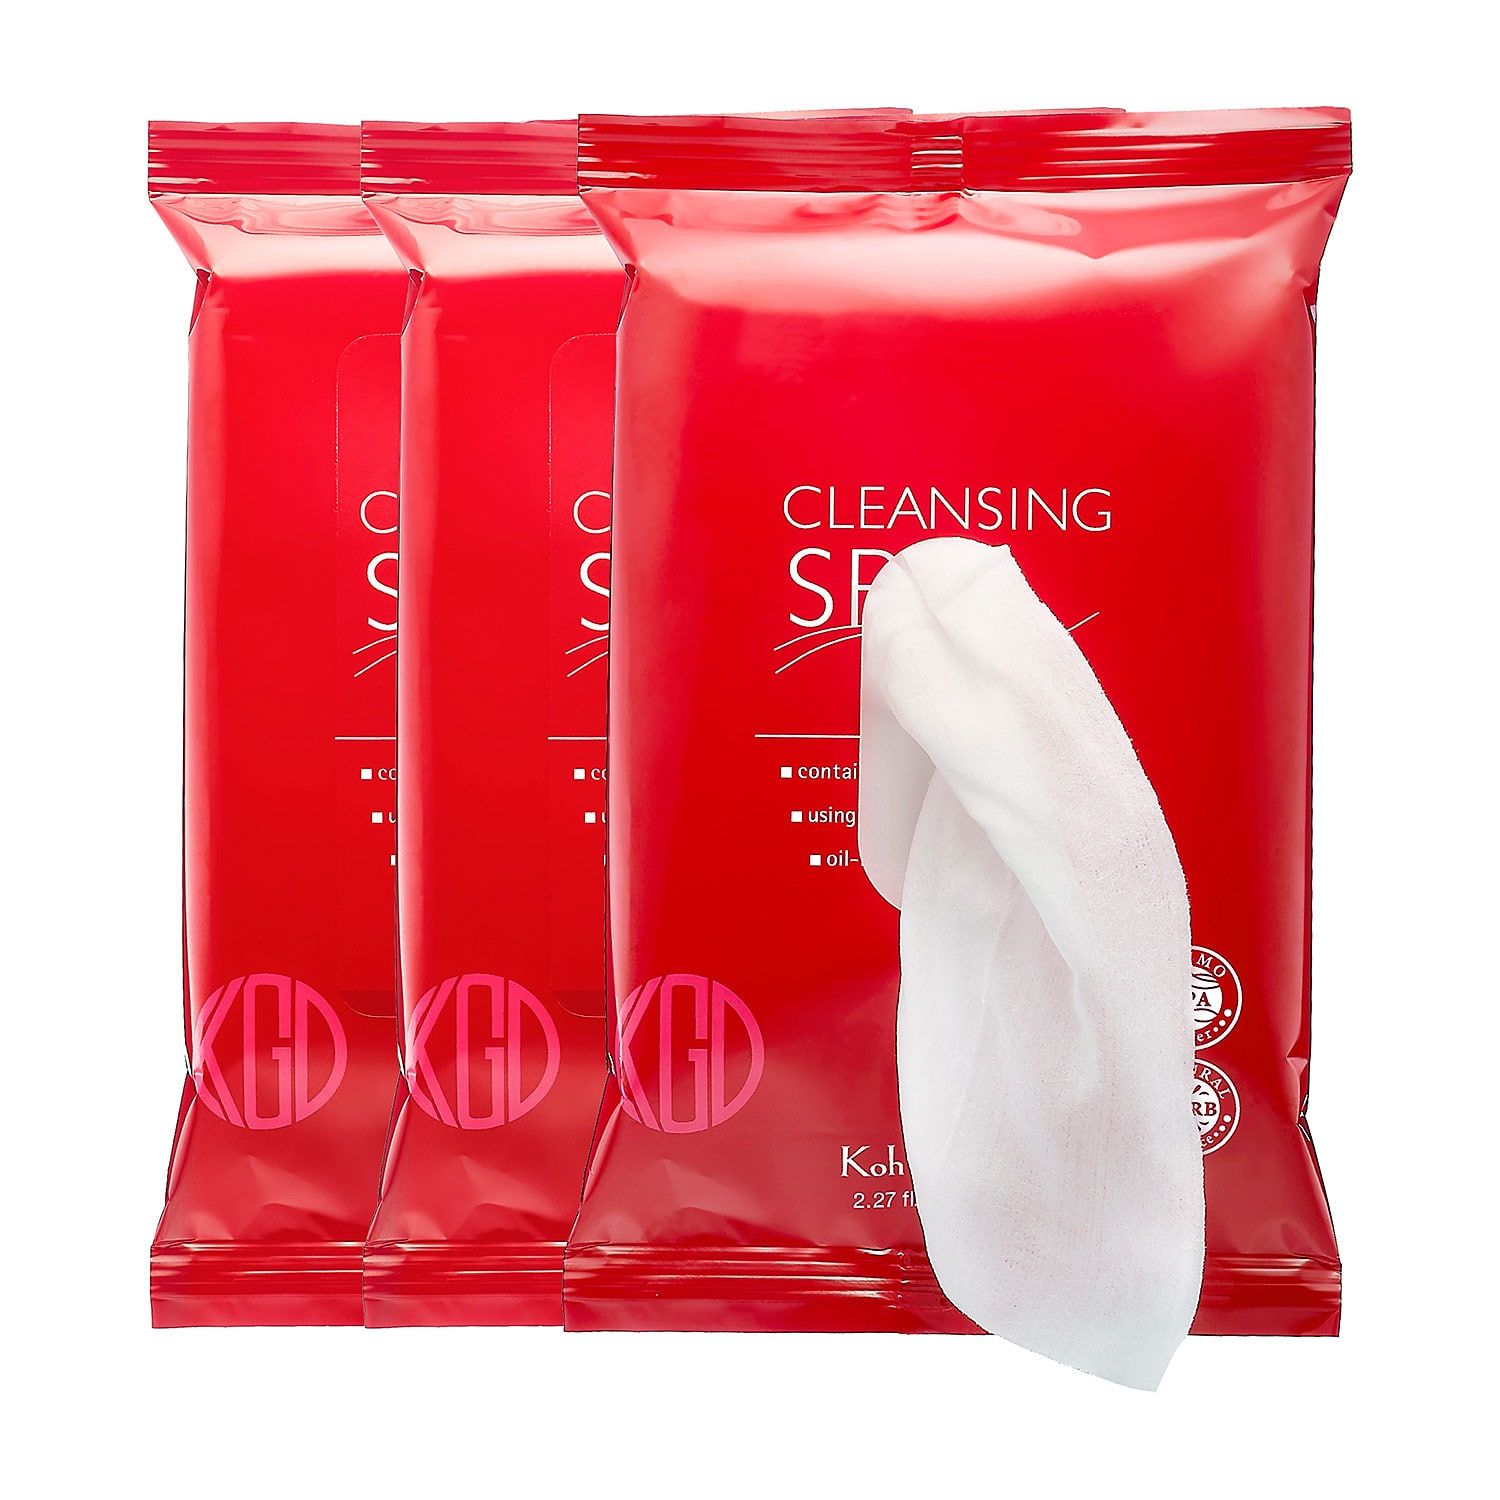 Koh Gen Do Cleansing Spa Water Cloths Best makeup